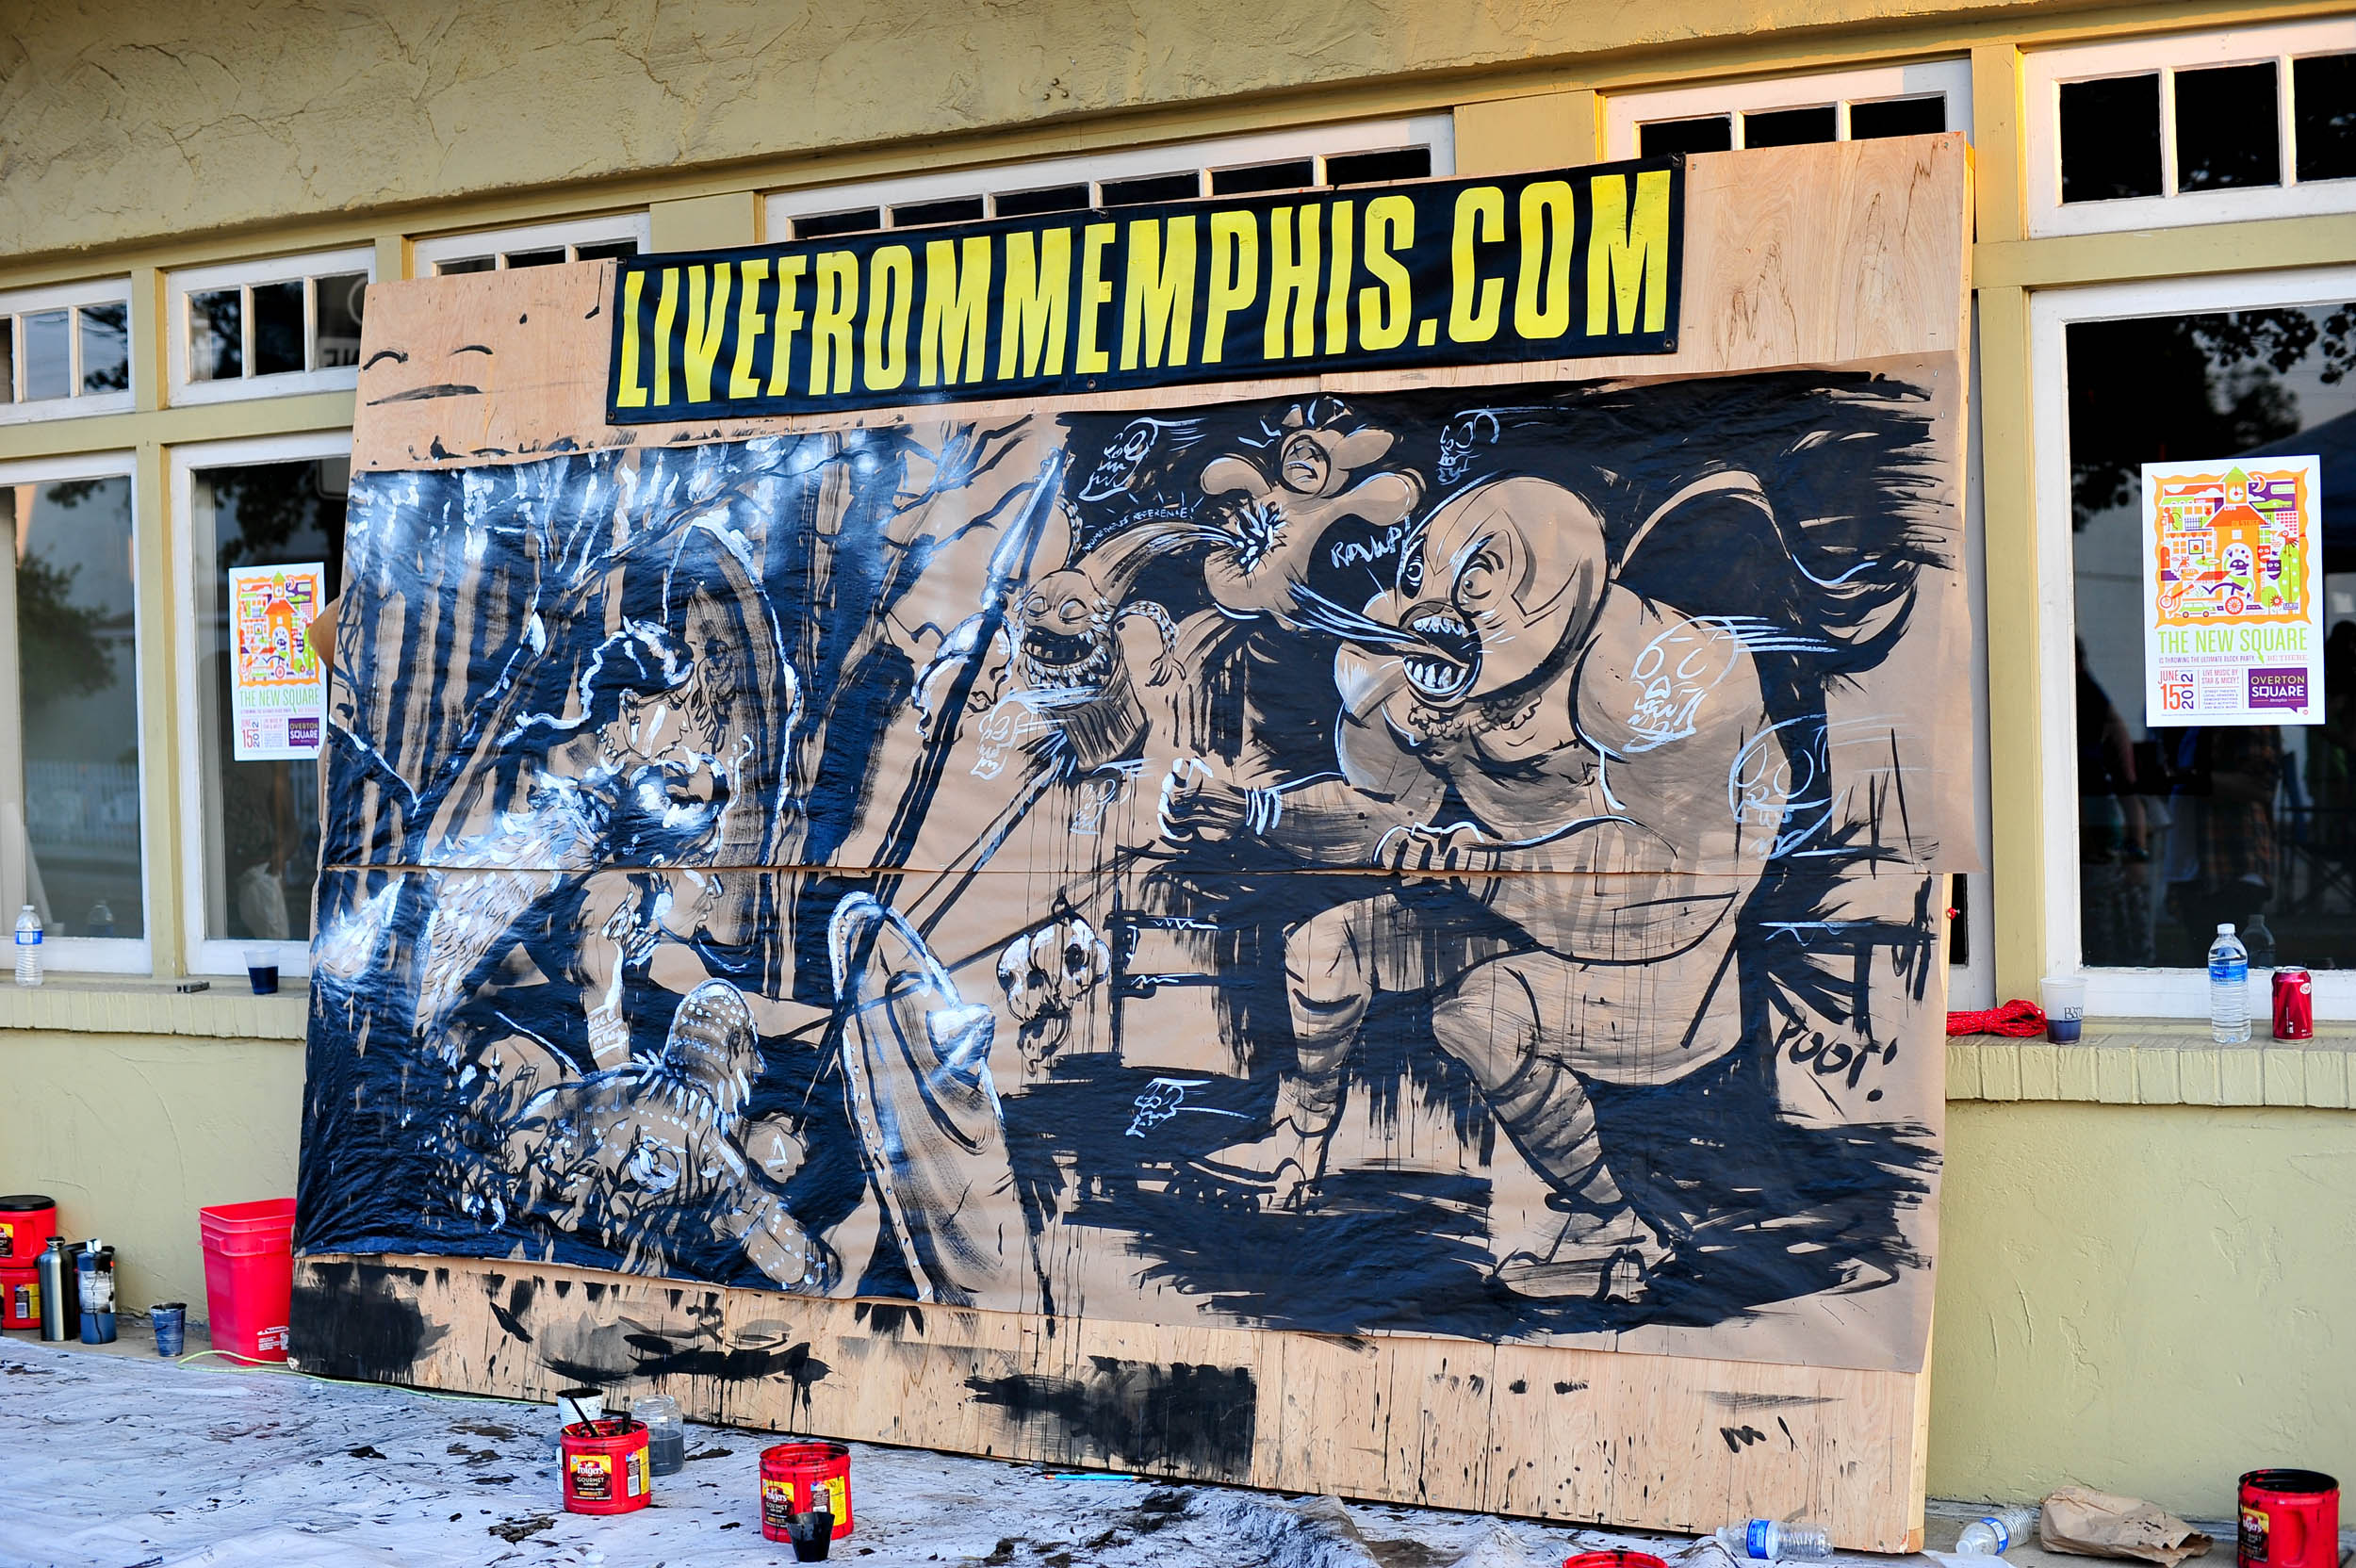 Ink Off by Live From Memphis